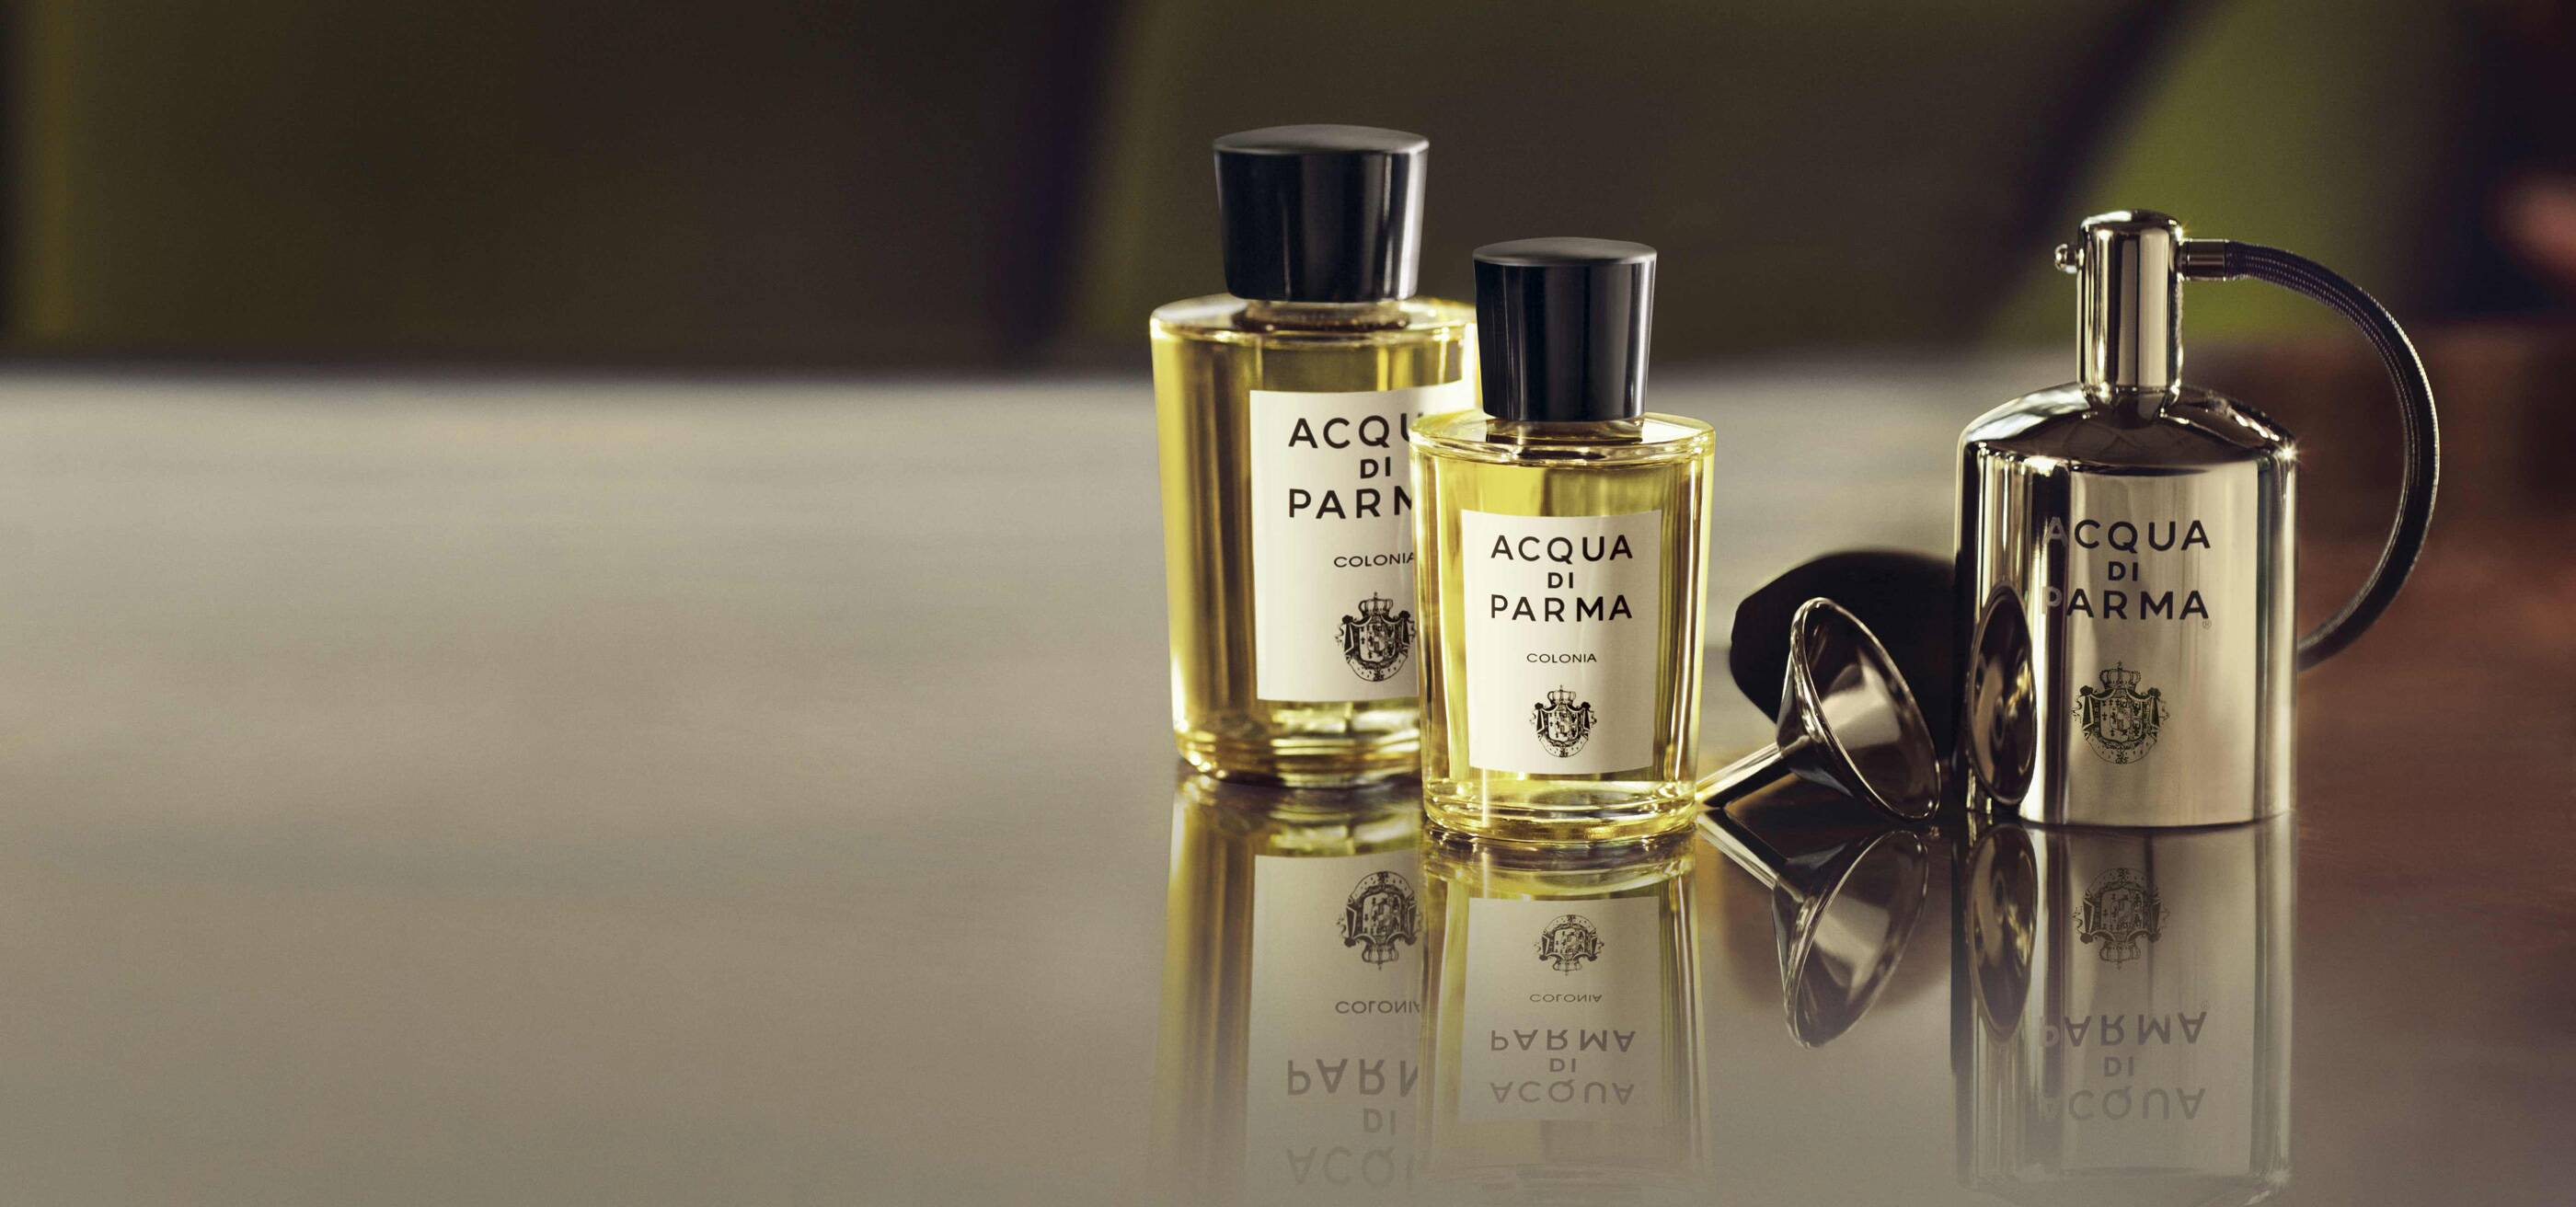 Acqua Di Parma Fragrances Produits De Beaut 233 Parfums